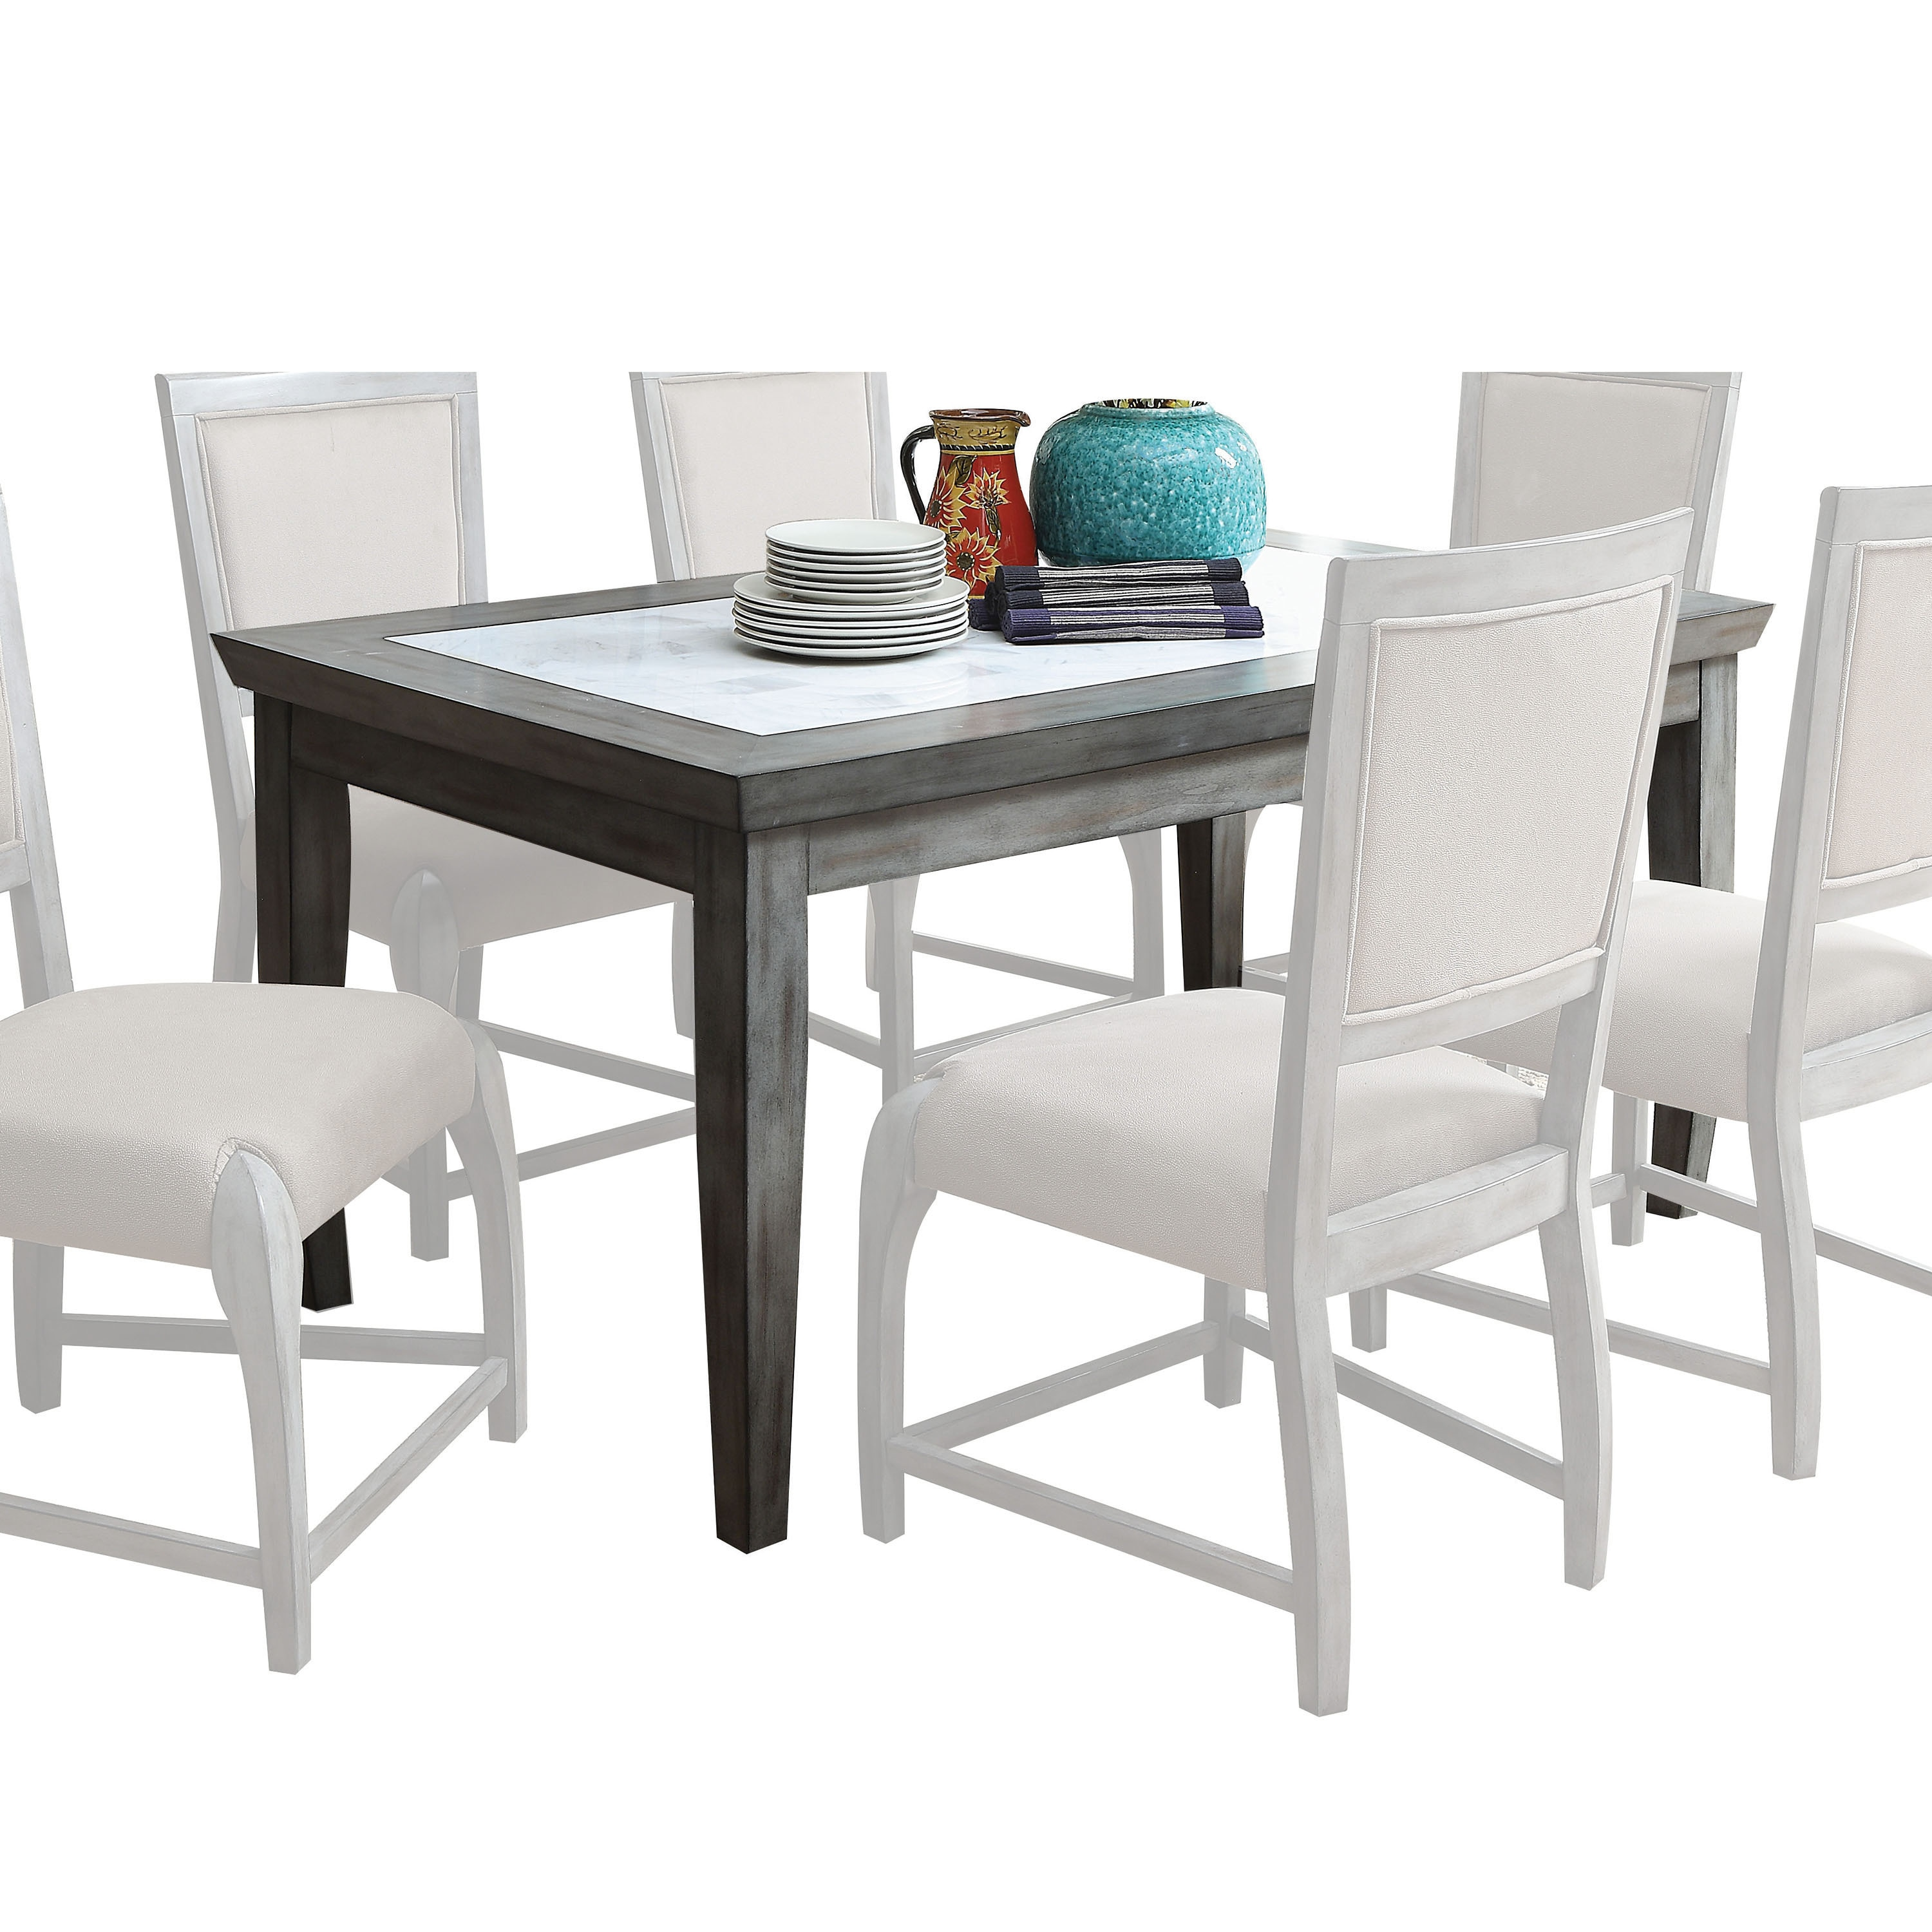 Shop acme furniture freira antique grey rubberwood and marble dining table free shipping today overstock com 14370388